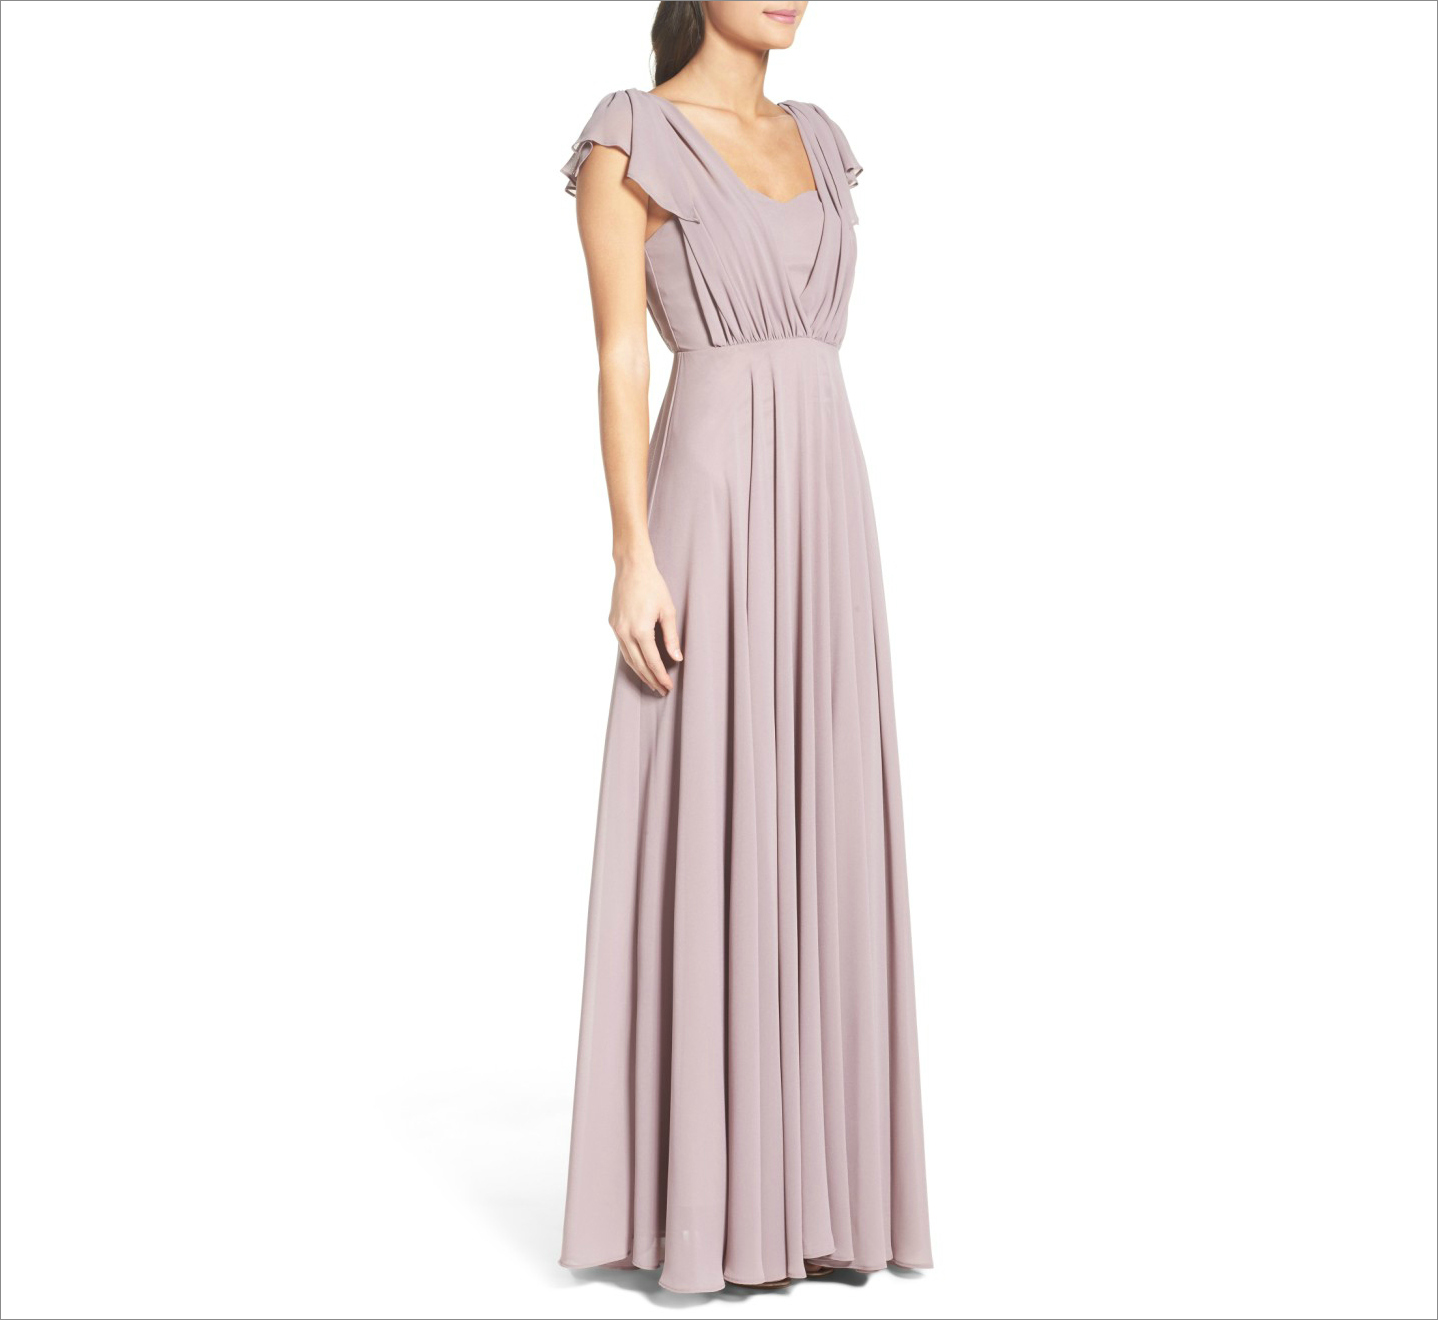 Lavender flutter sleeve long bridesmaid dress ideas under 150